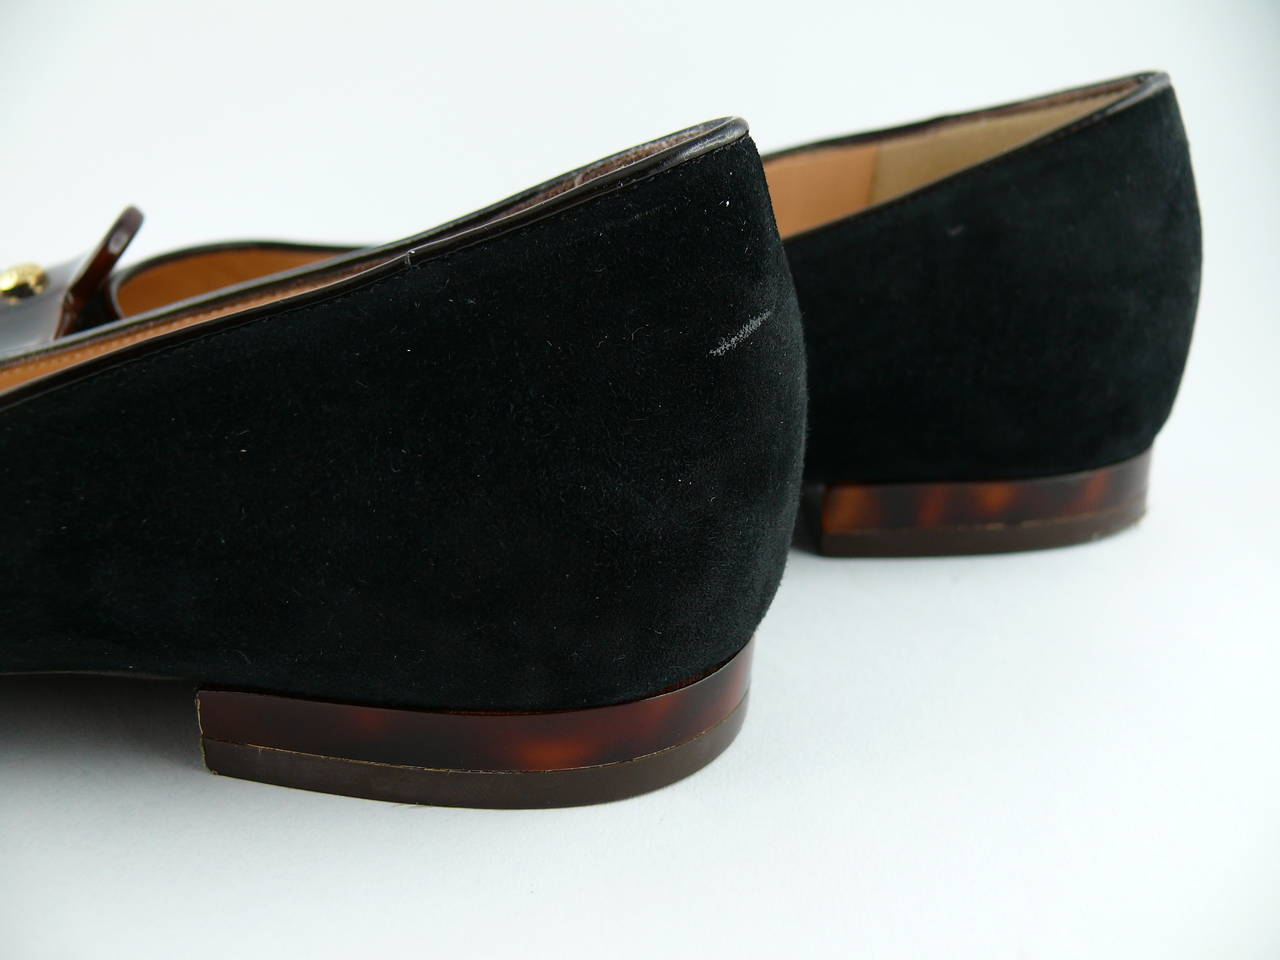 Louis Vuitton Black Suede and Resin Flower Ballet Flat IT 34 1/2 - US 5 1/2 For Sale 2